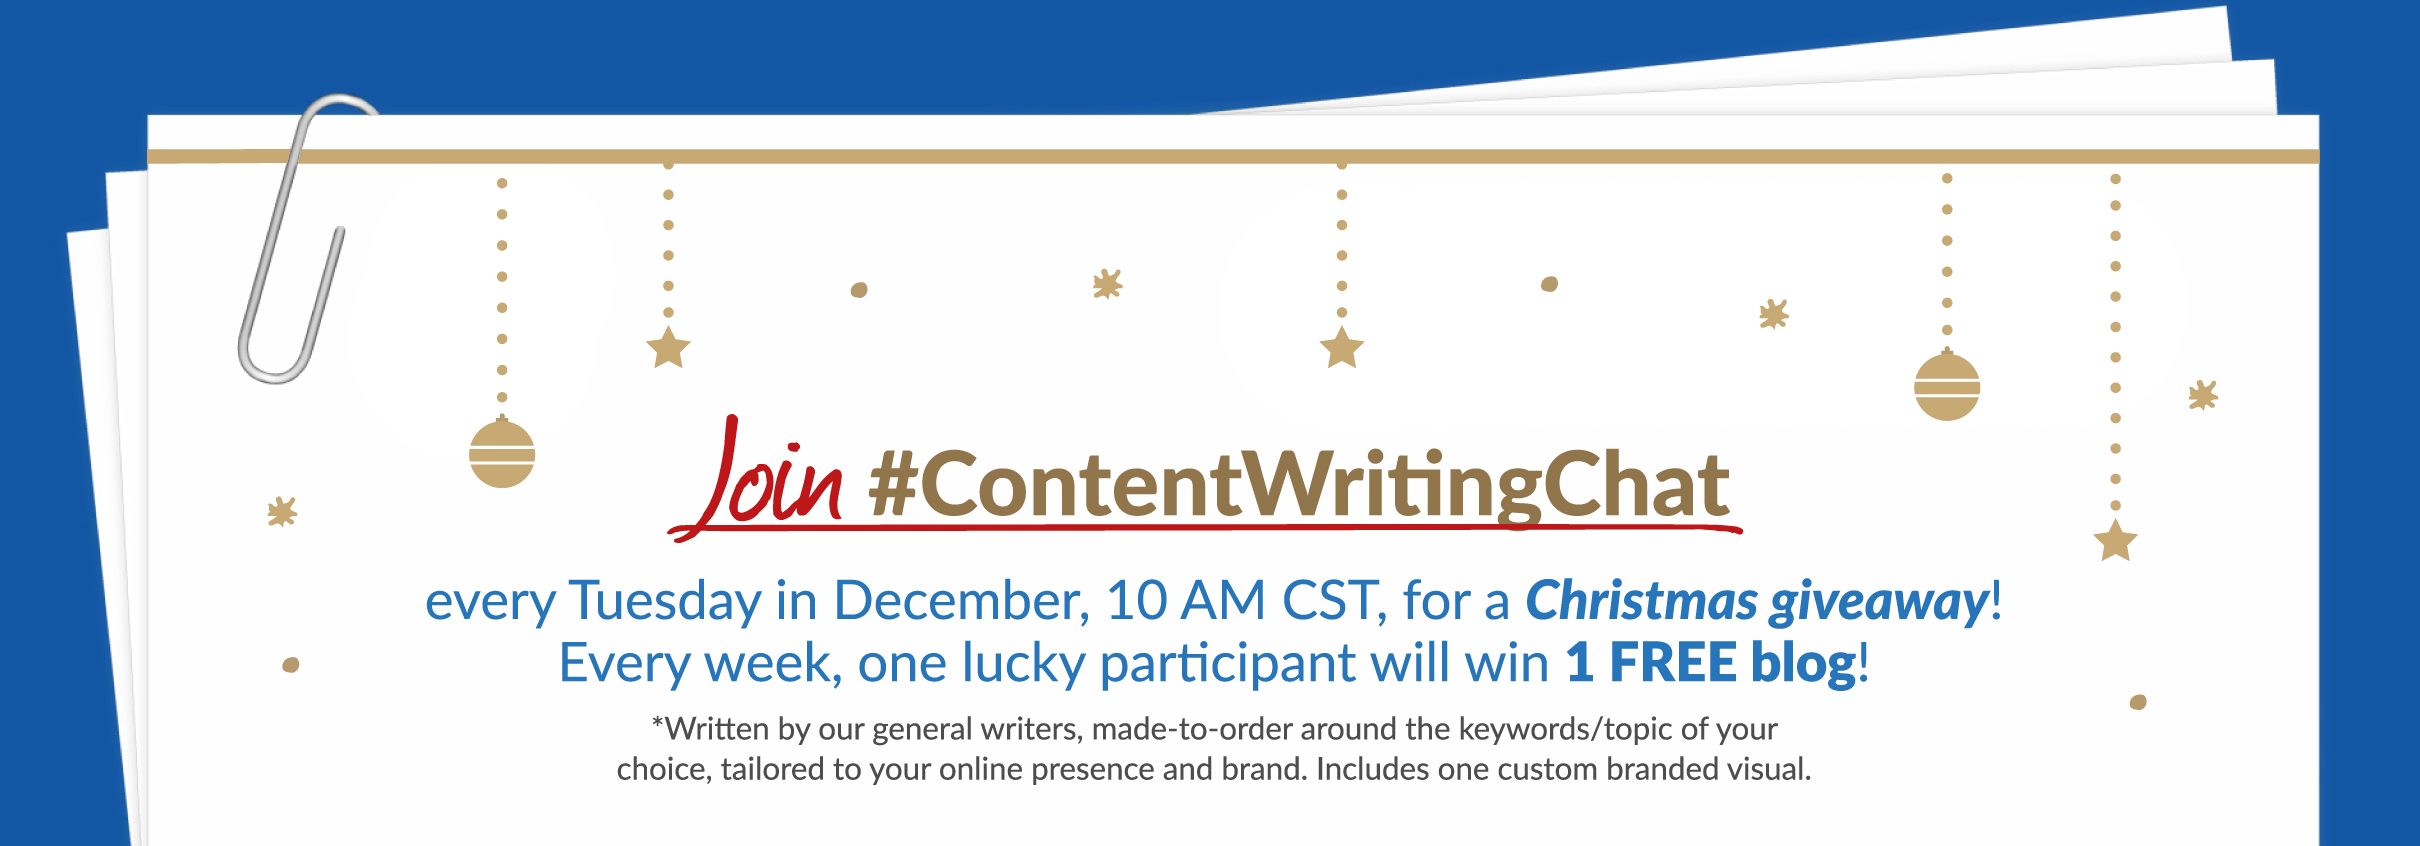 #contentwritingchat giveaway